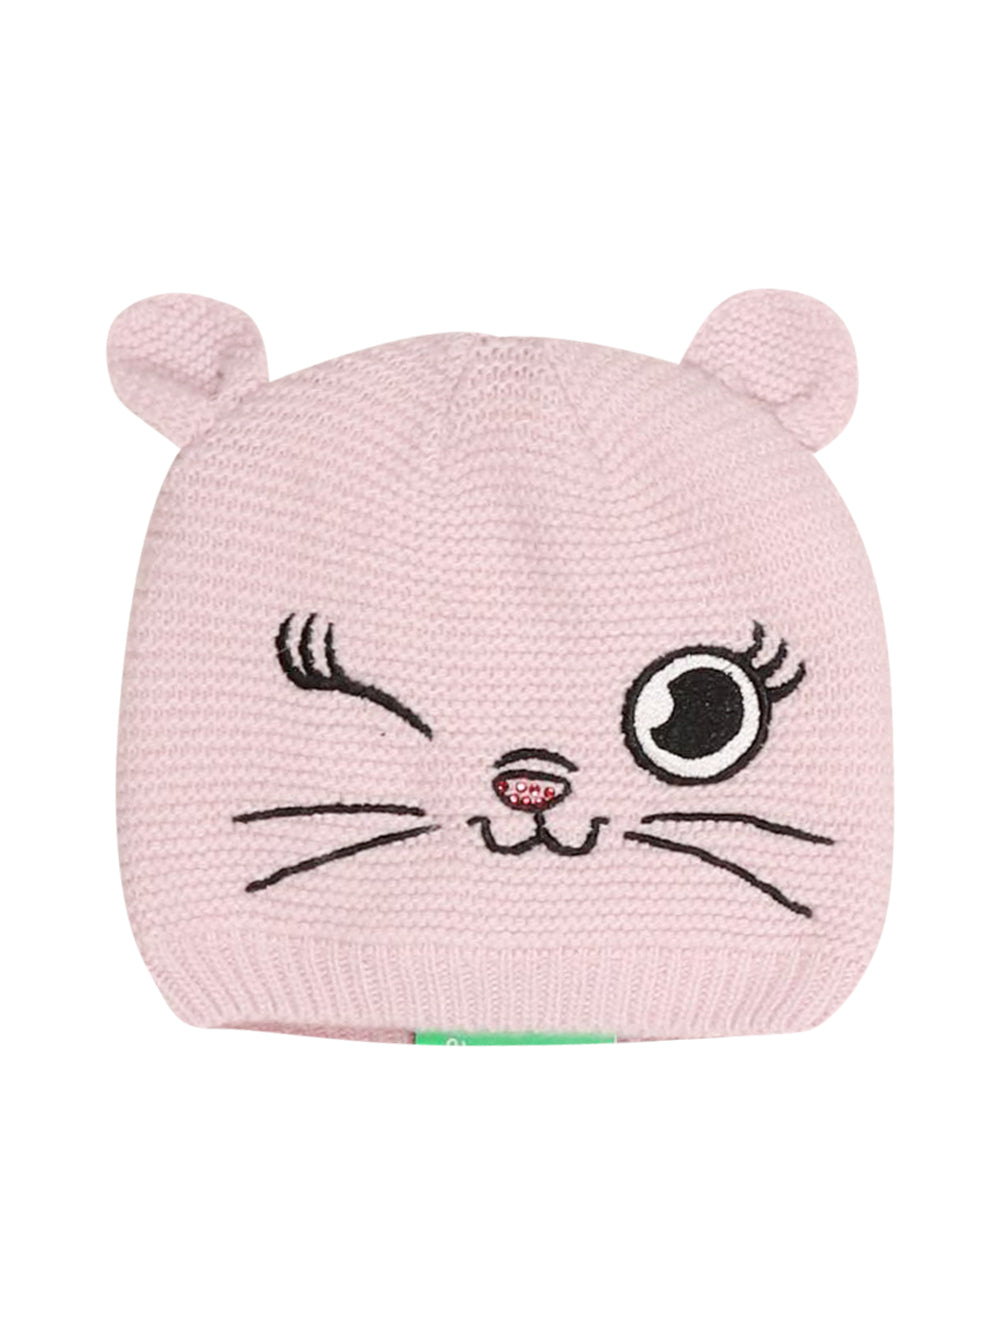 Front photo of Preloved Monnalisa Pink Girl's hat - size 18-24 mths